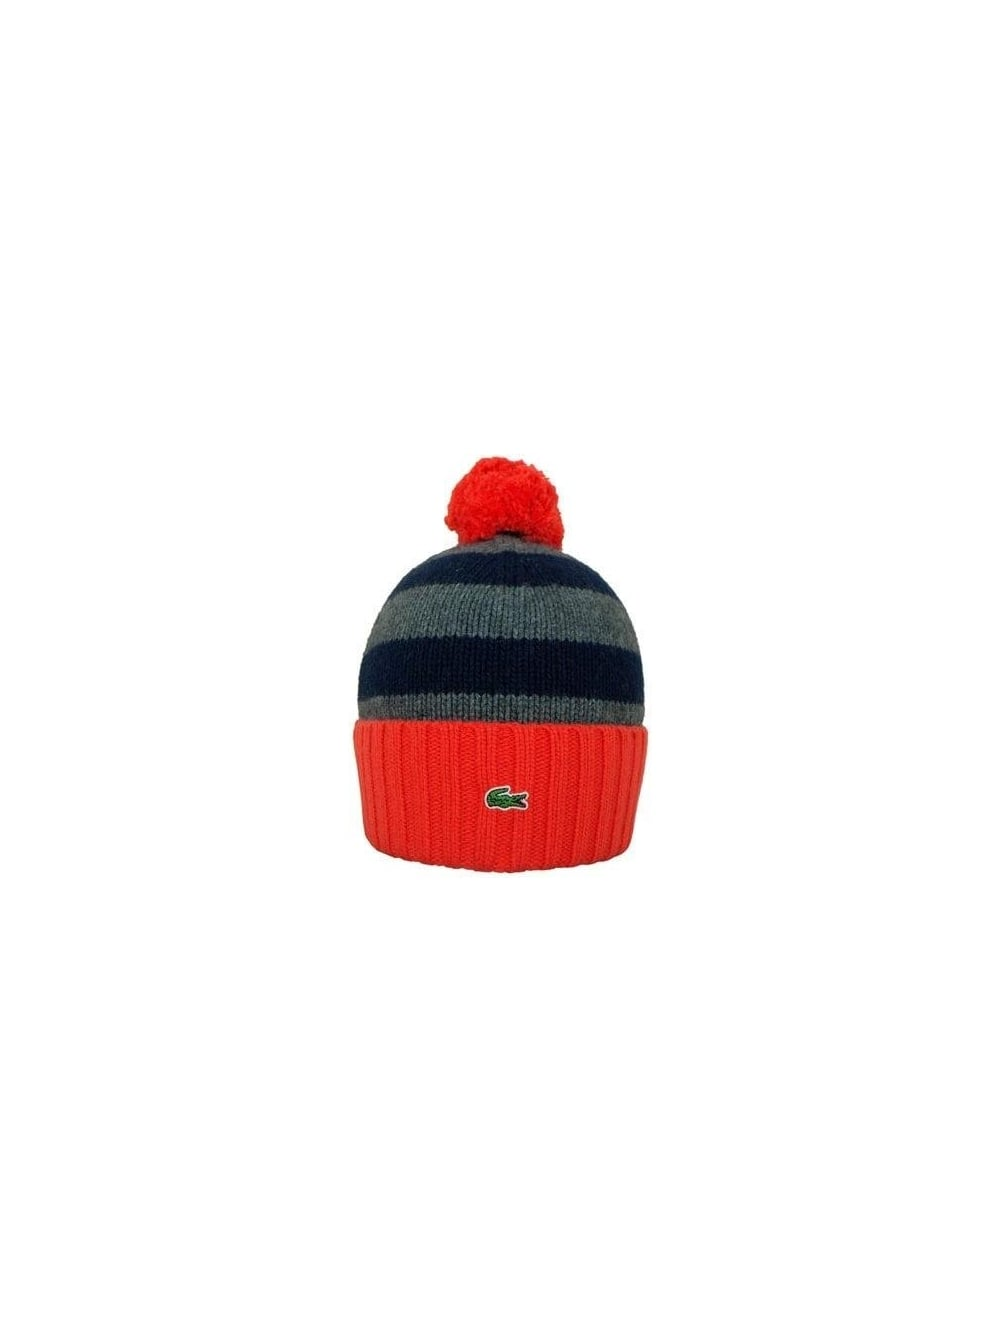 Lacoste Striped Bobble Hat in Eclipse - Northern Threads 0cd5b8d6eb6